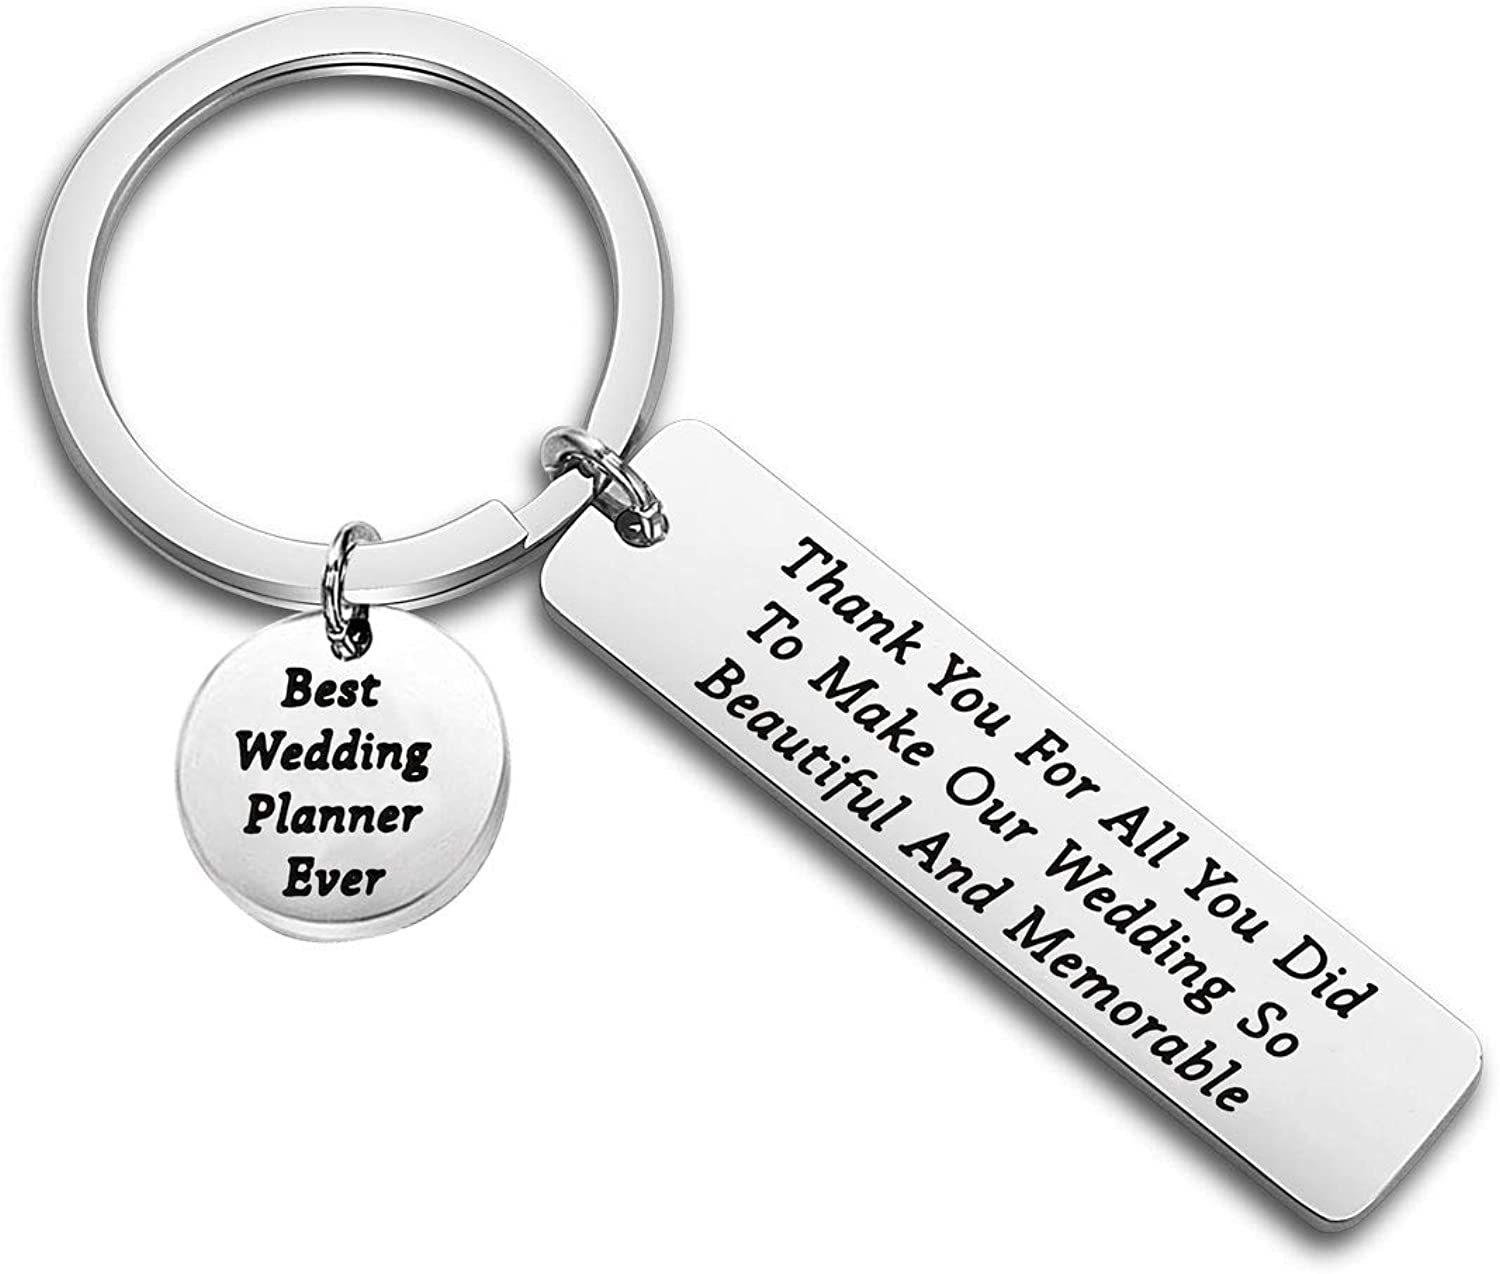 Lywjyb Birdgot Wedding Planner Gift Wedding Planner Thank You Gift Thank You for All You Did to Make Our Wedding So Beautiful and Memorable Appreciation Keychain